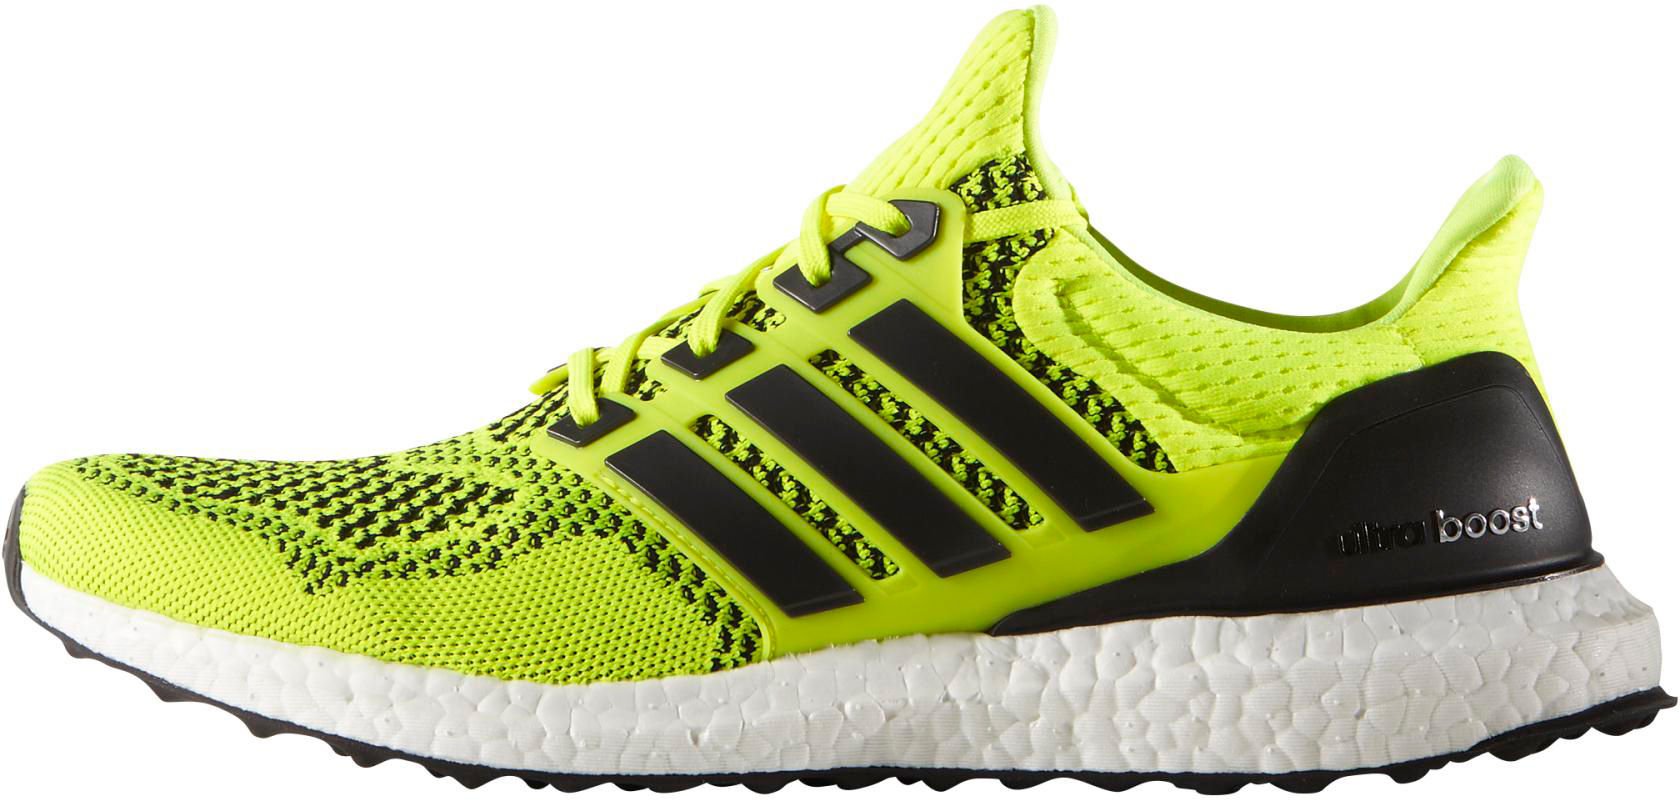 Adidas Ultra Boost Shoes (AW15)